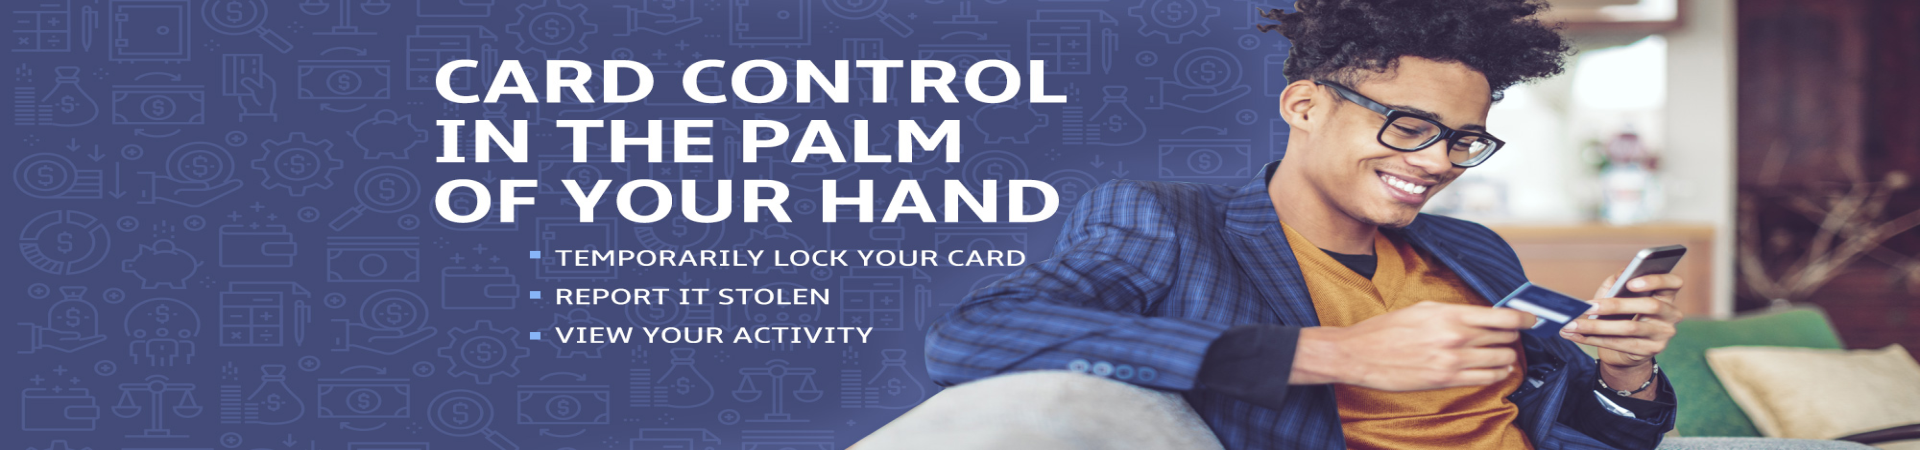 Card Control in the Palm of Your Hand